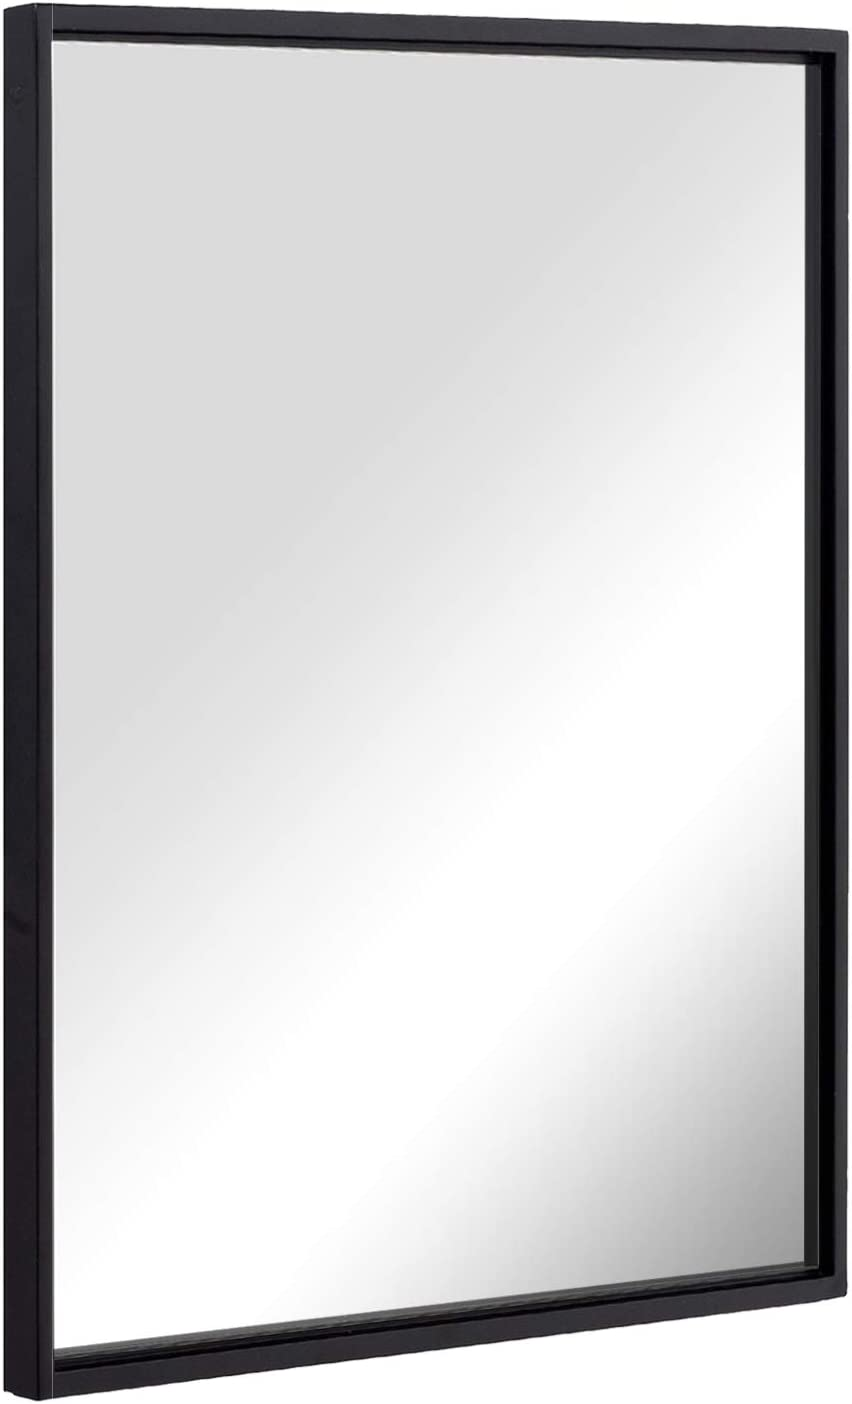 Shop Wall Mounted Mirror 24x36 Inch Black from Amazon on Openhaus